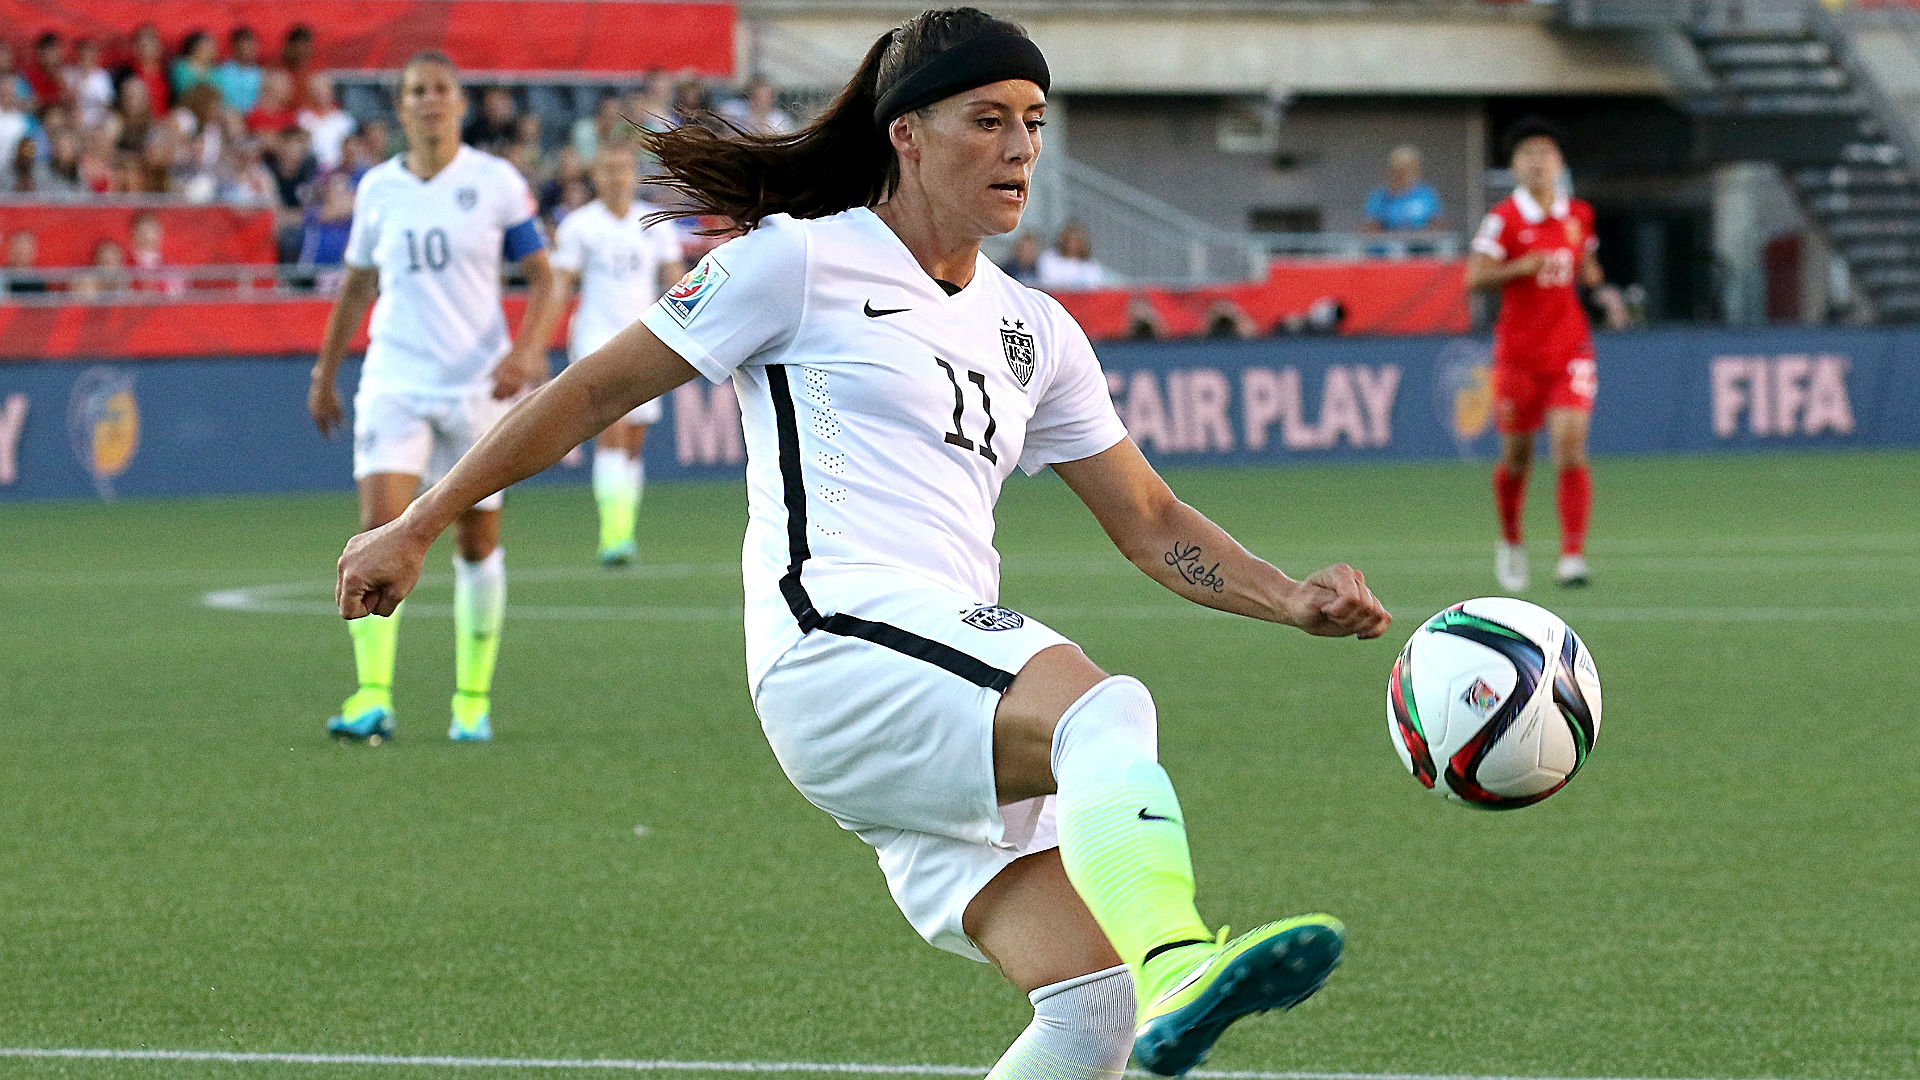 USA priced as underdogs in Women's World Cup semifinals vs. Germany